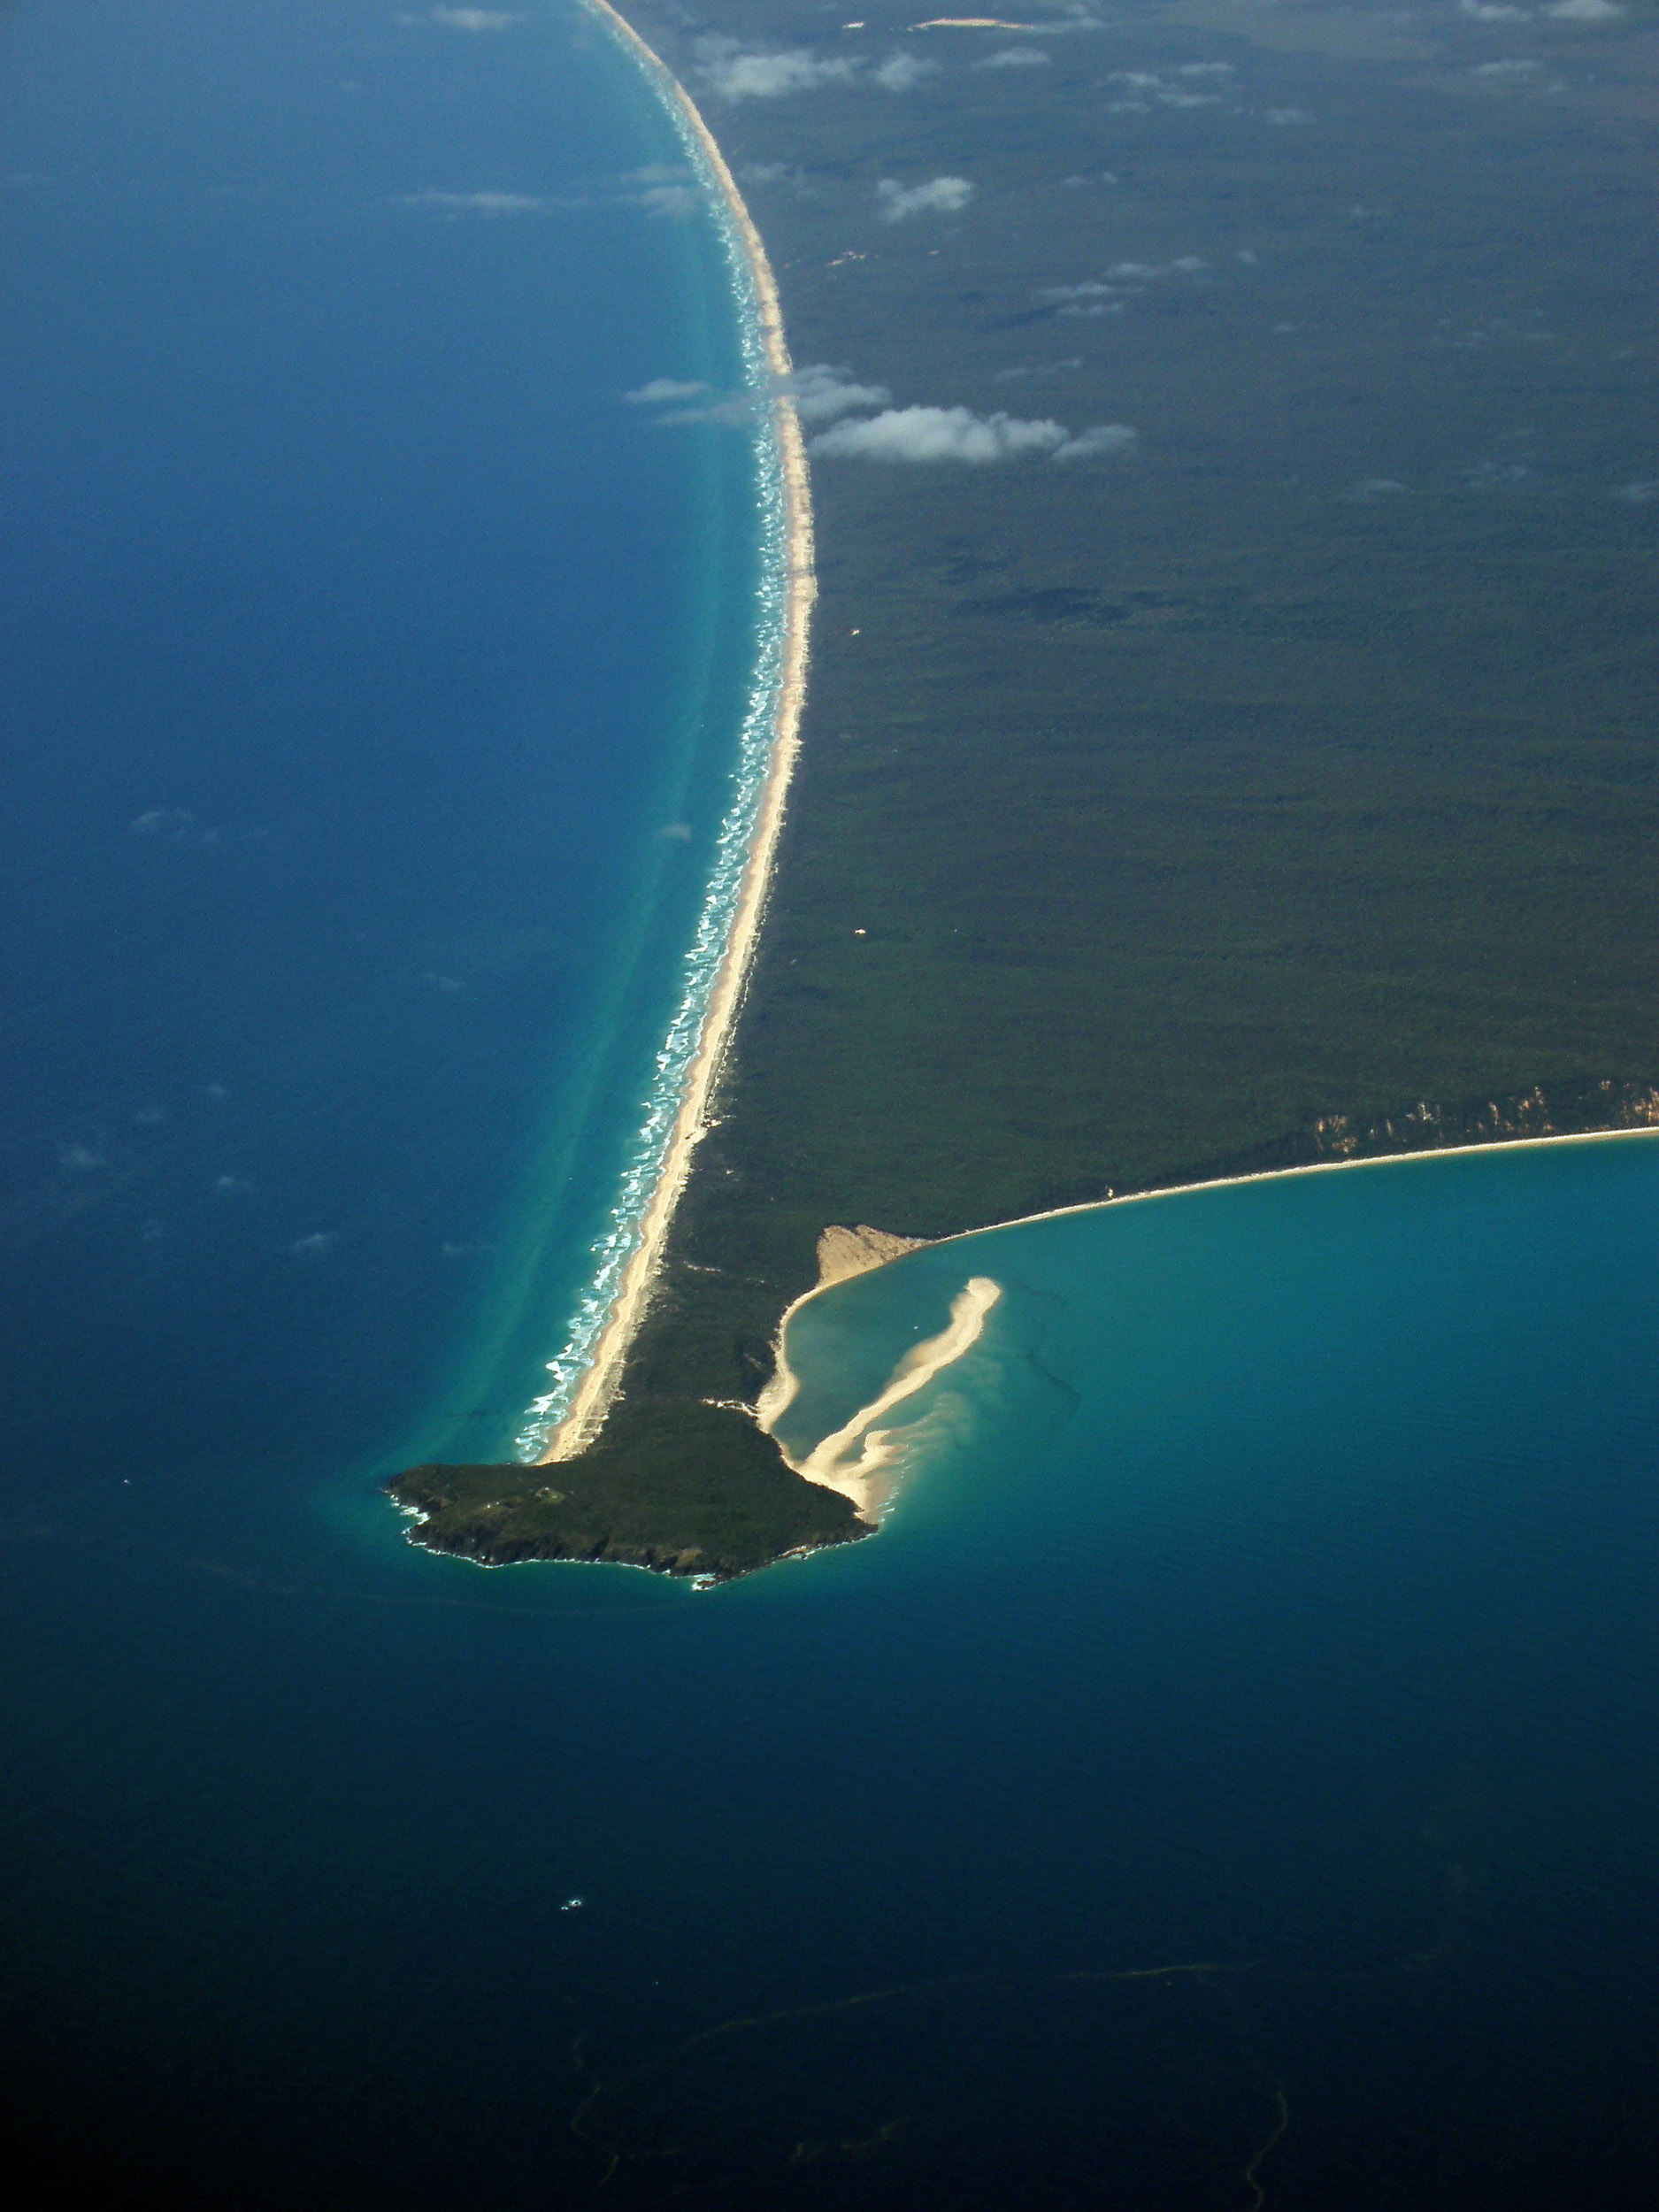 aerial view of the headland at double island point, queensland